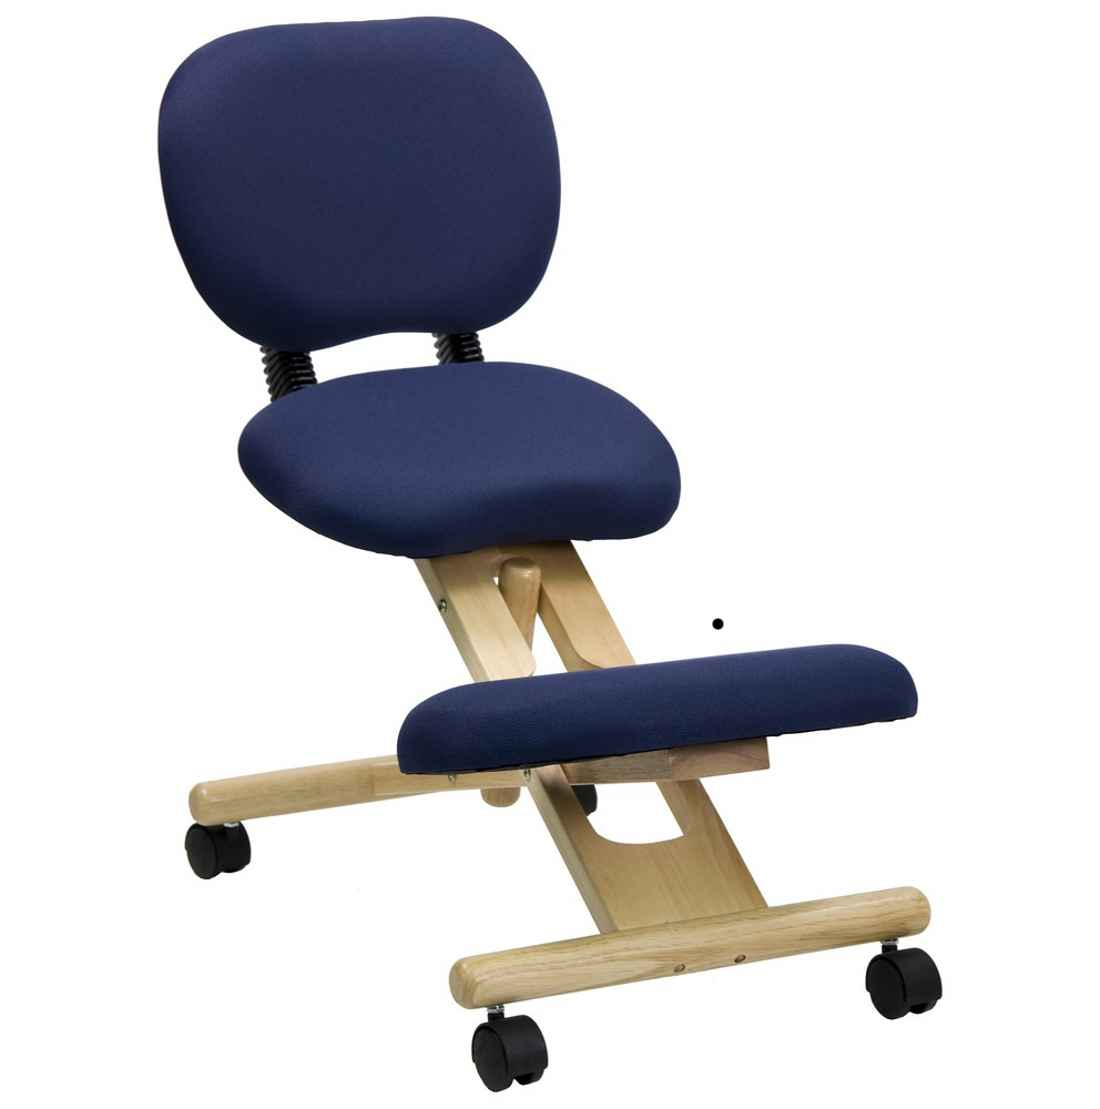 Ergonomic Chair Kneeling Knee Chair Office Depot Office Furniture